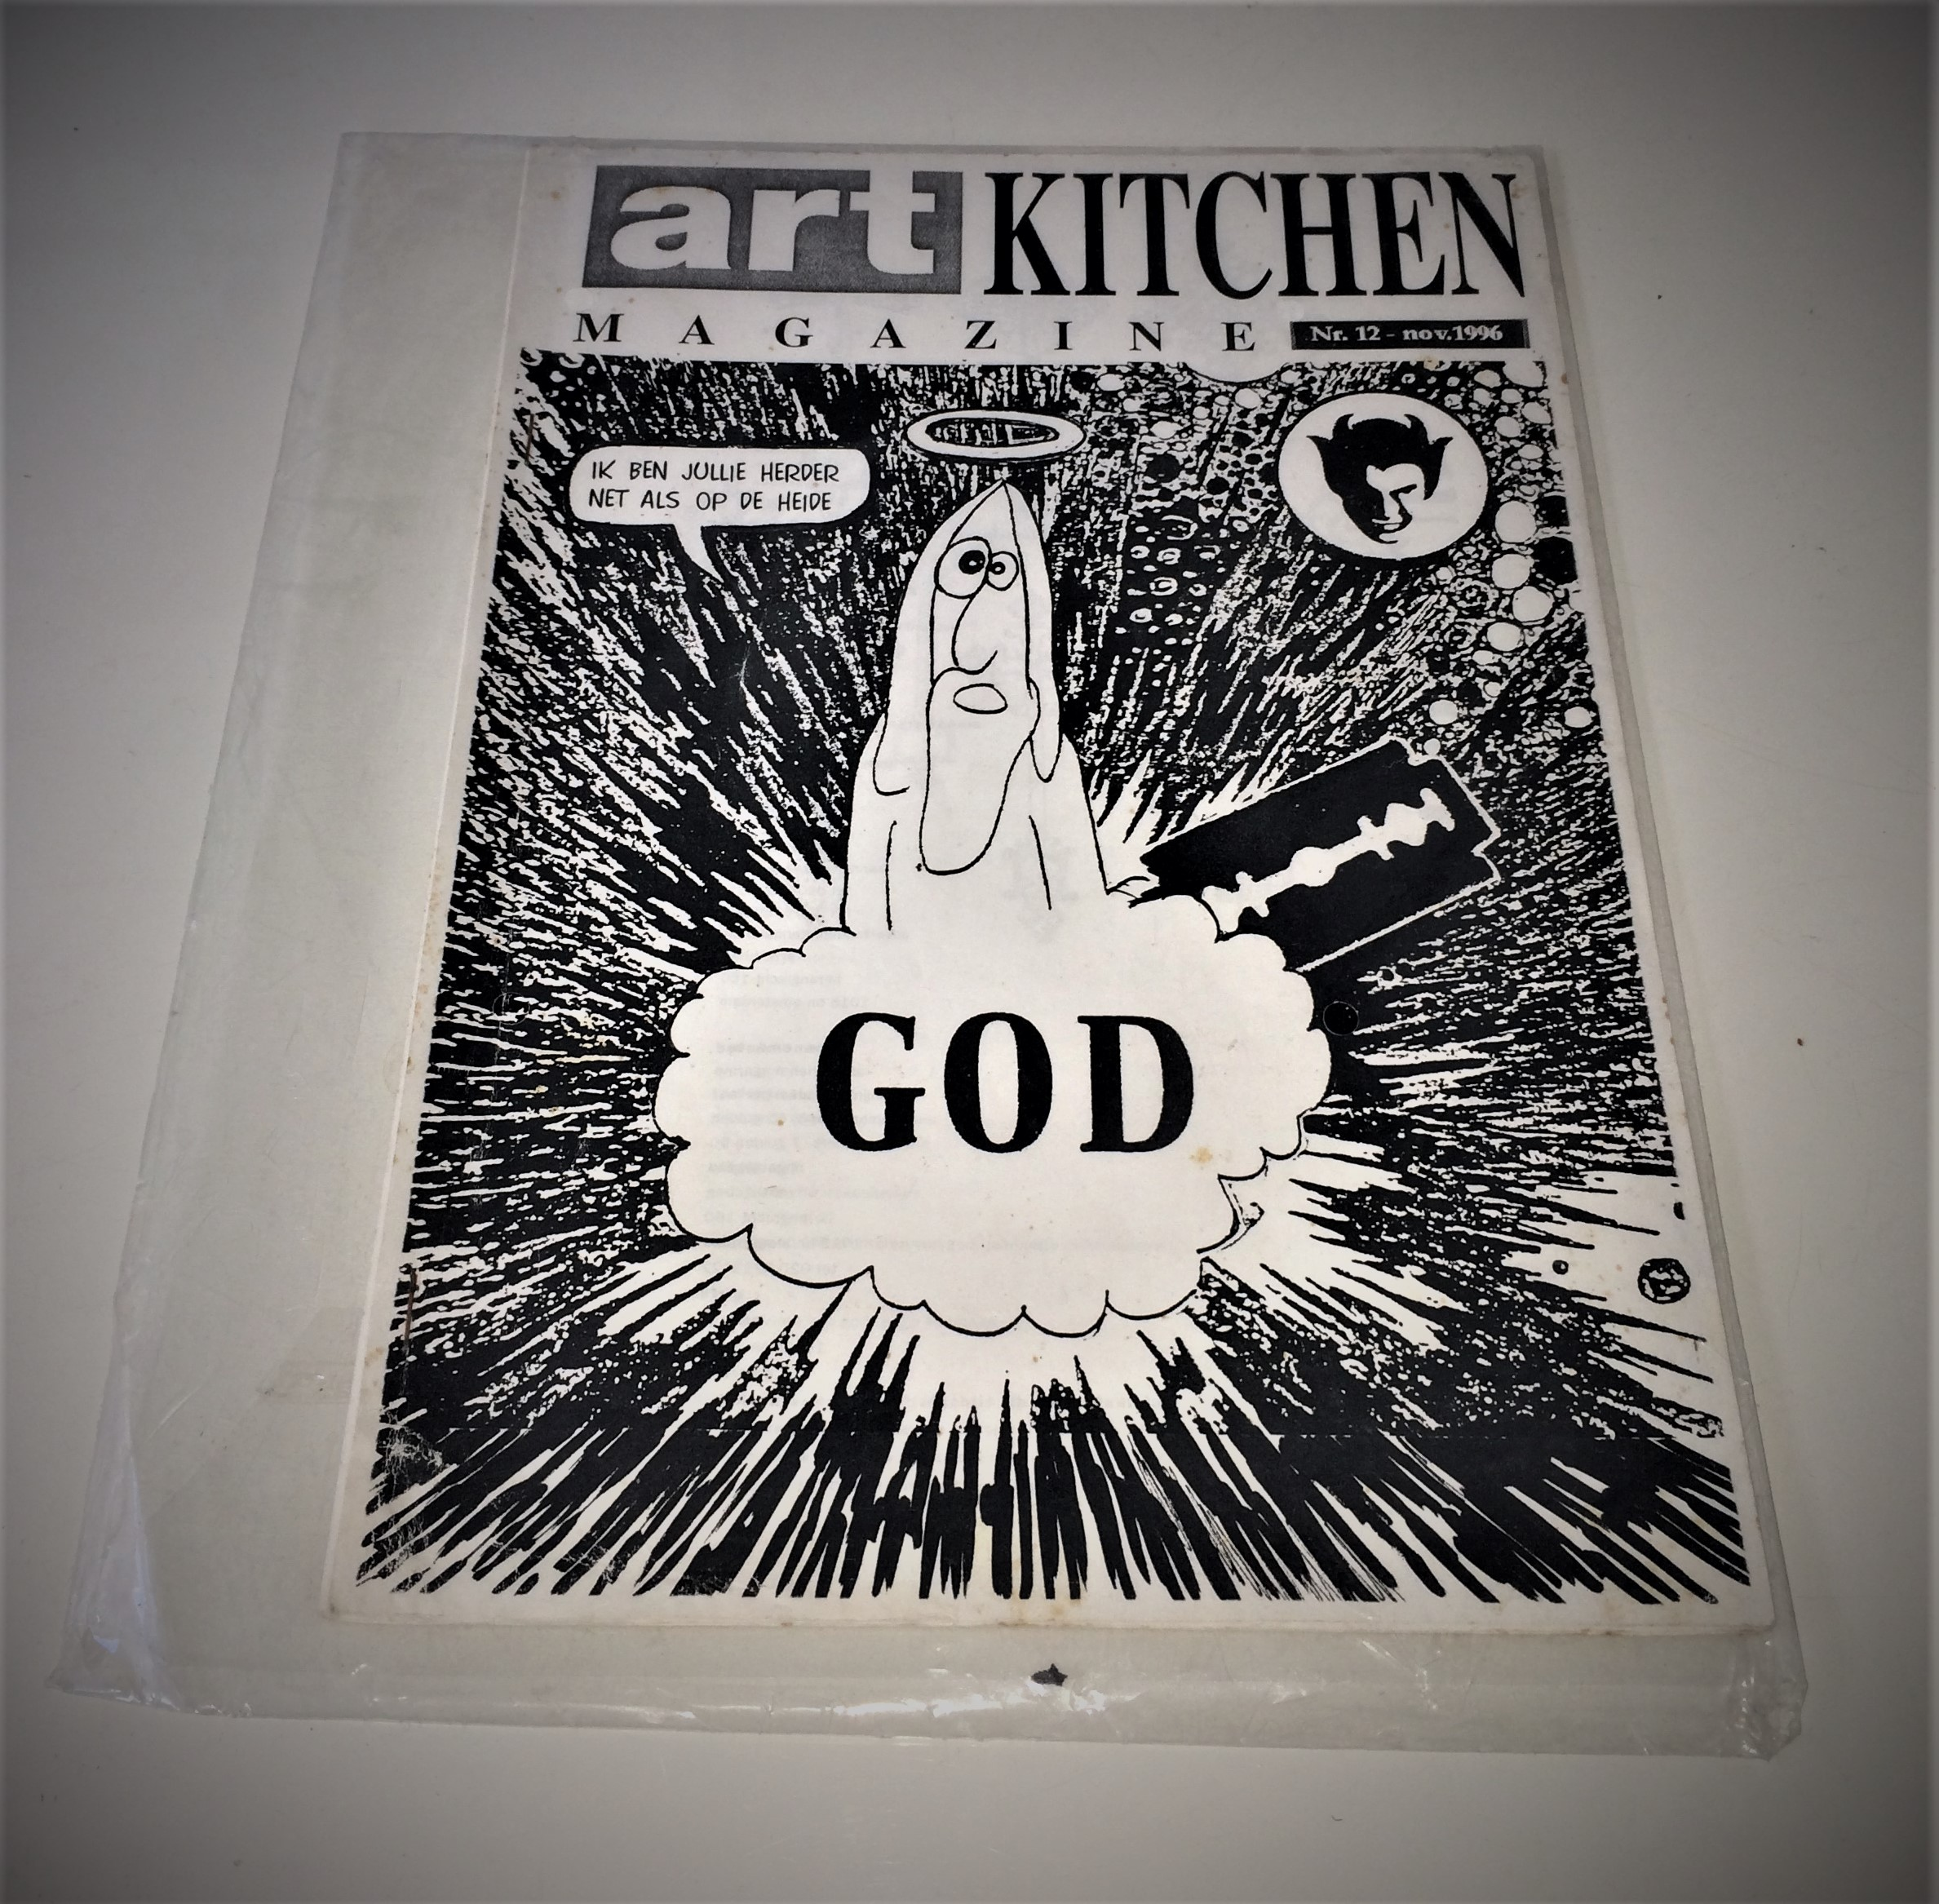 ArtKitchen-Magazine-God-Nr-12-nov-1996